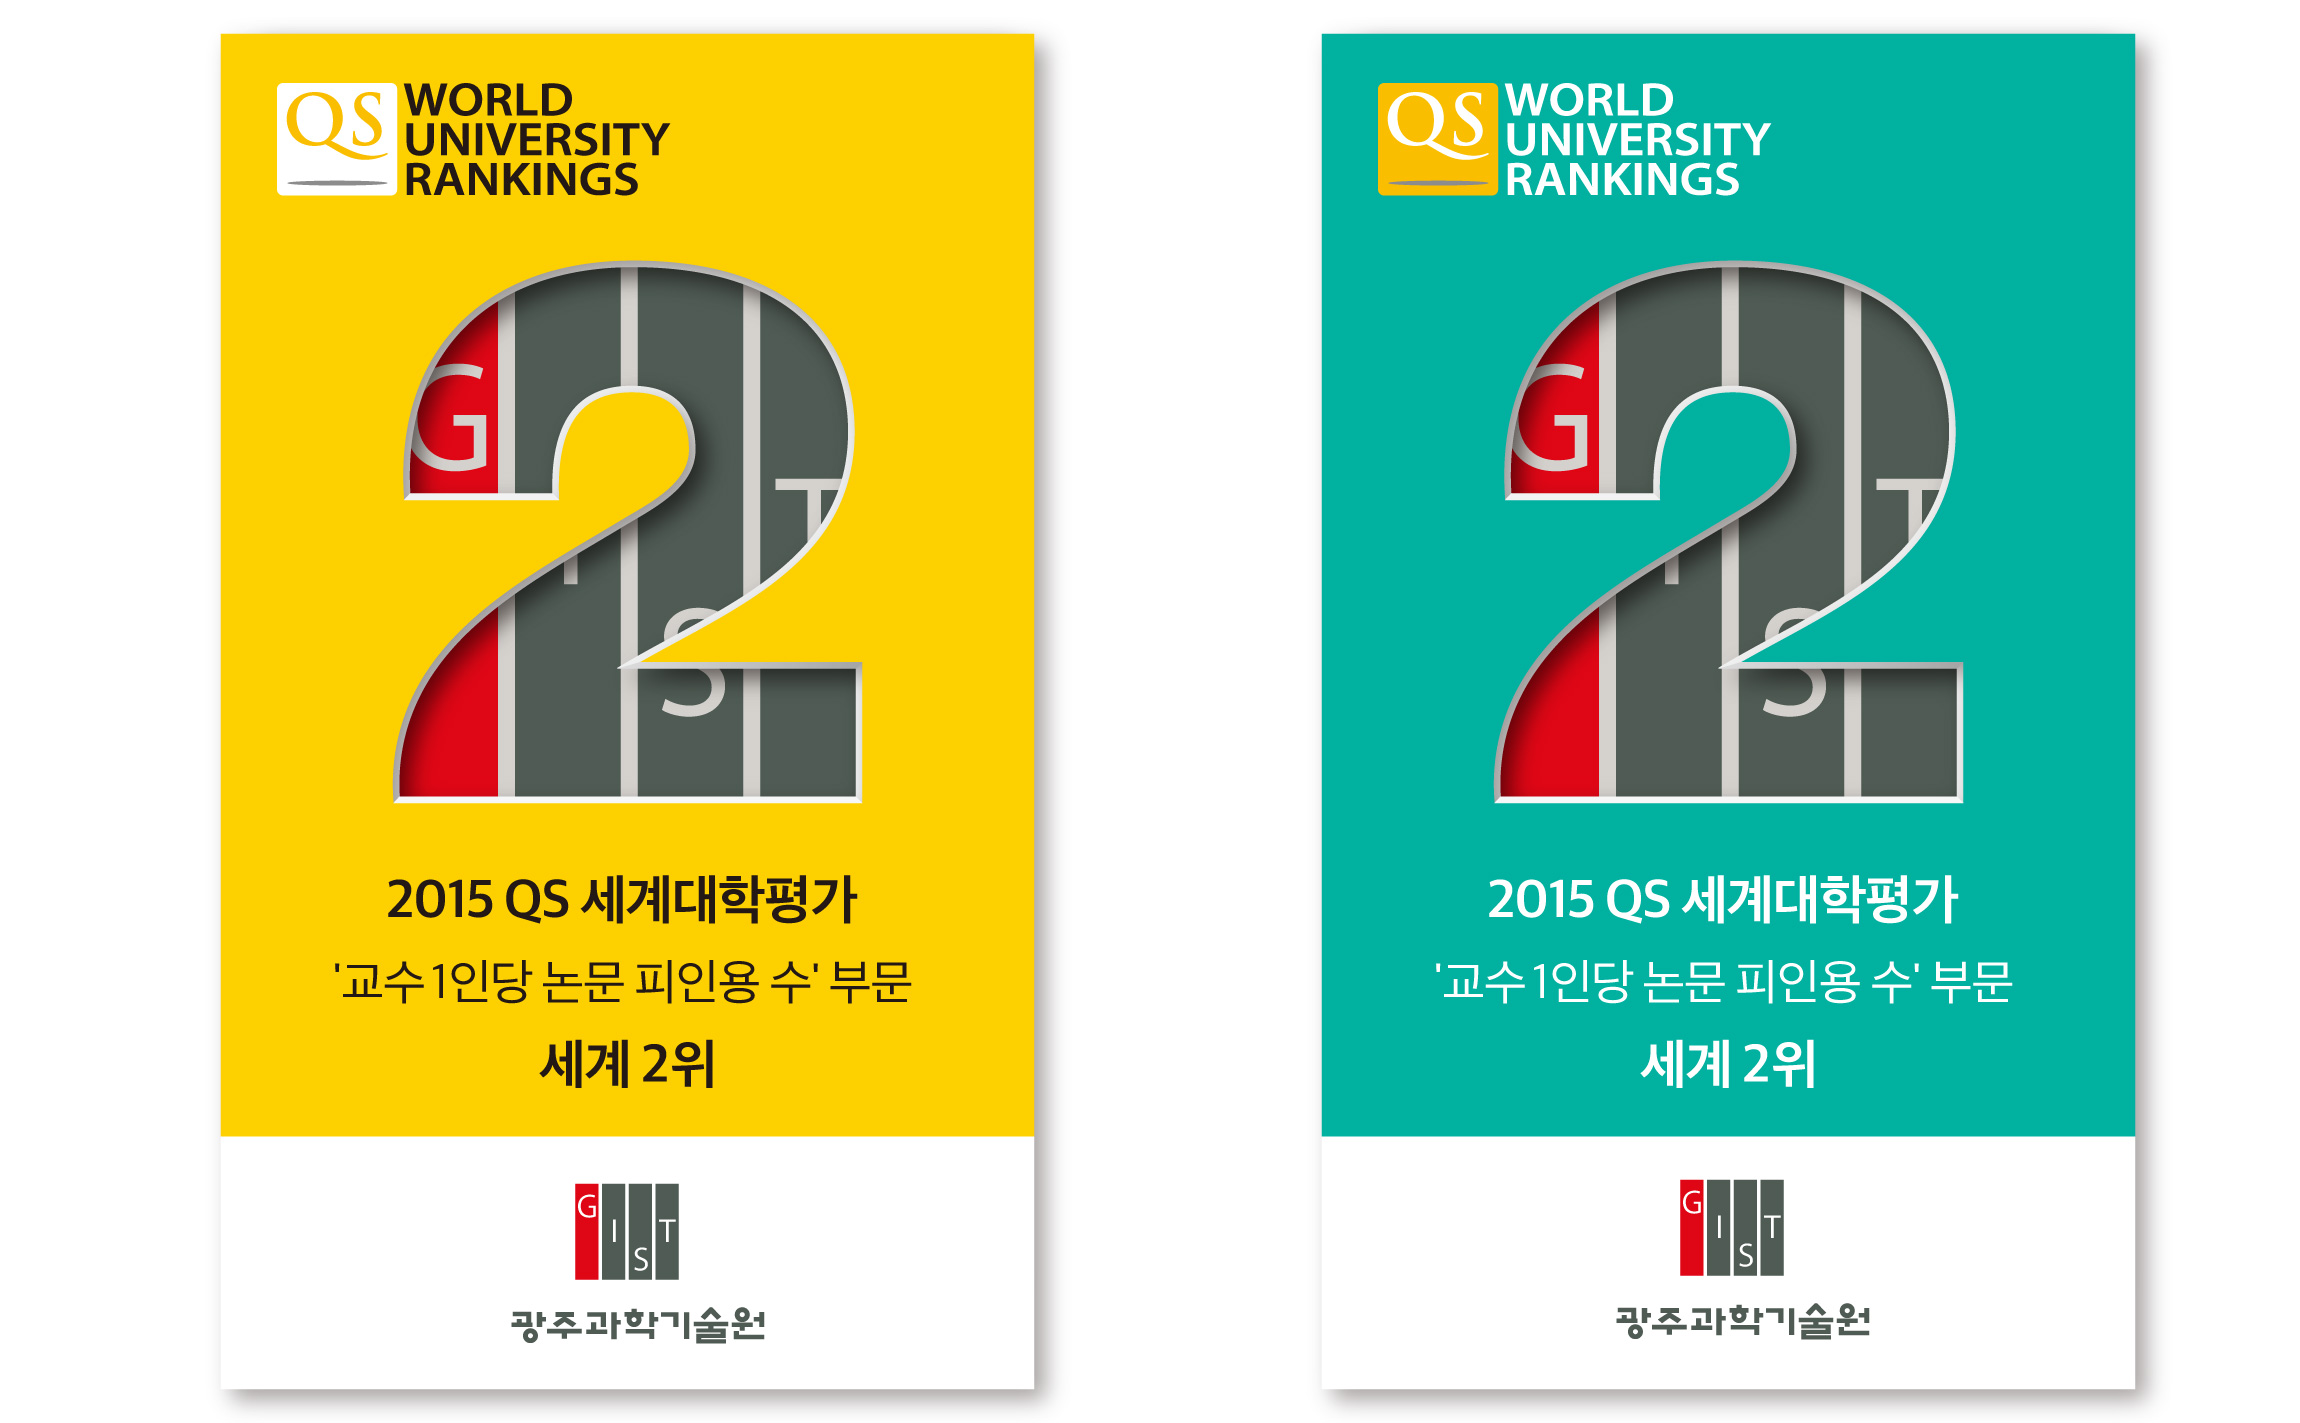 GIST at the 2nd Gwangju Institute of Science and Technology (GIST) Graphic